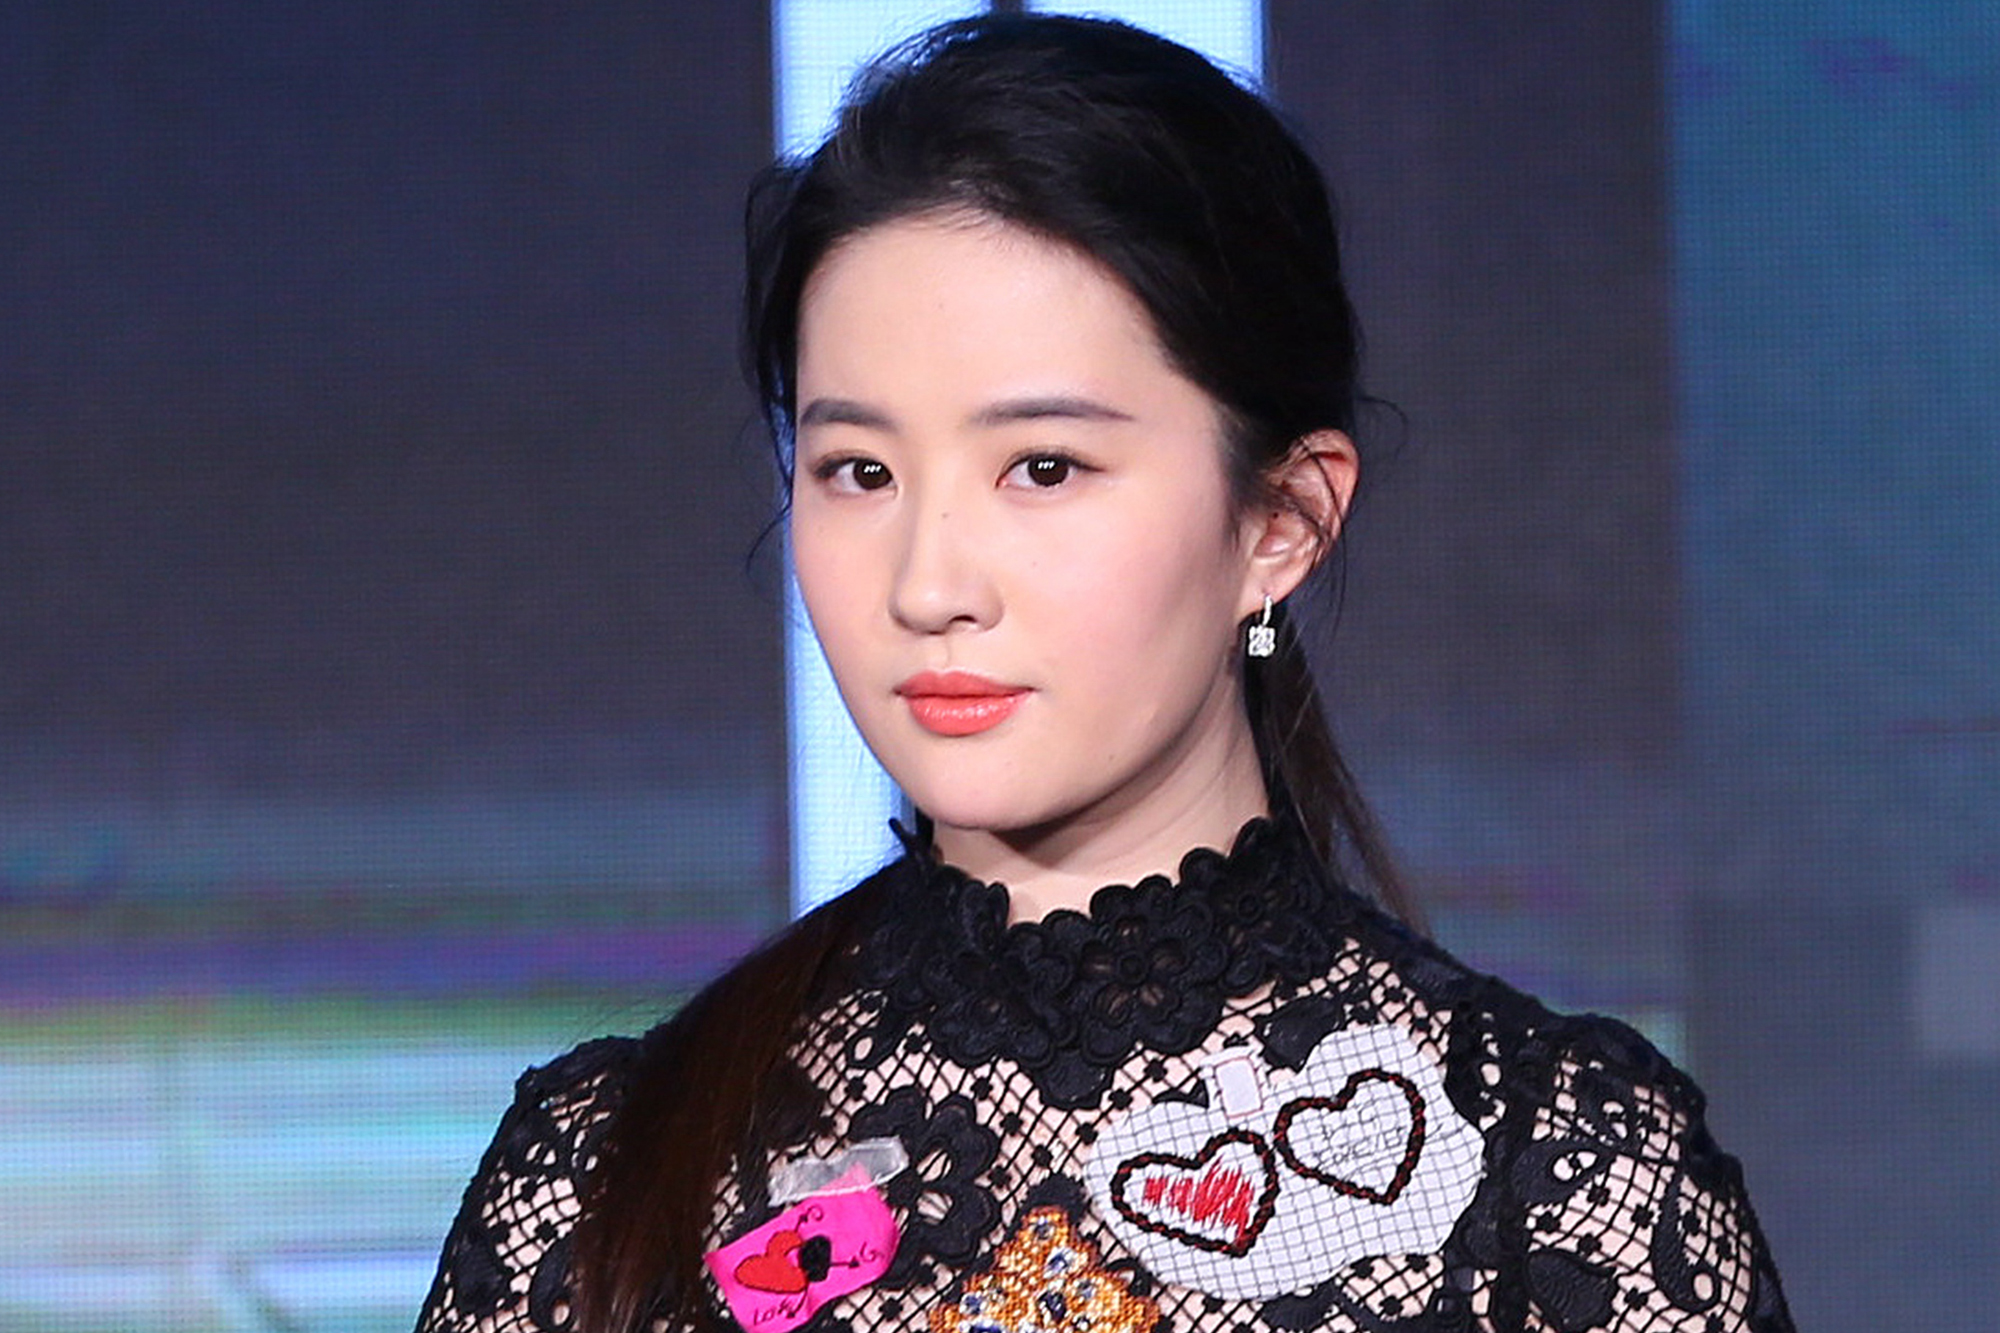 Mulan Star Liu Yifei Everything To Know About The Chinese Actress Ew Com